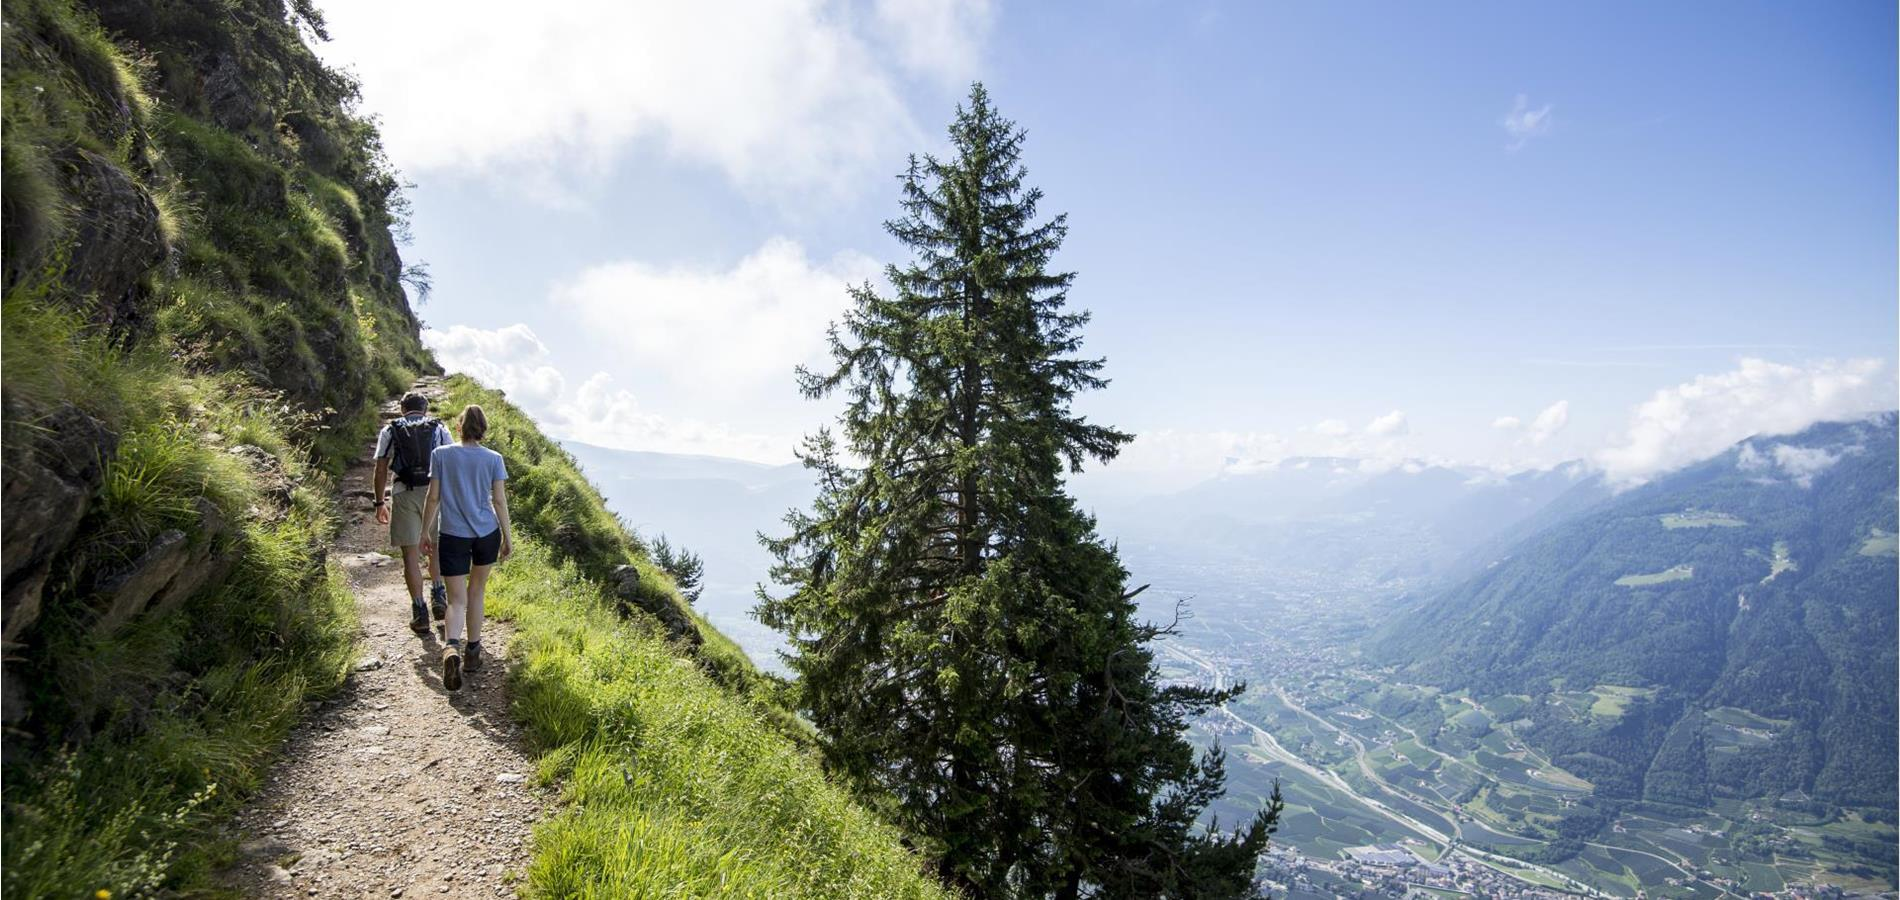 The Merano High Mountain Trail near Parcines